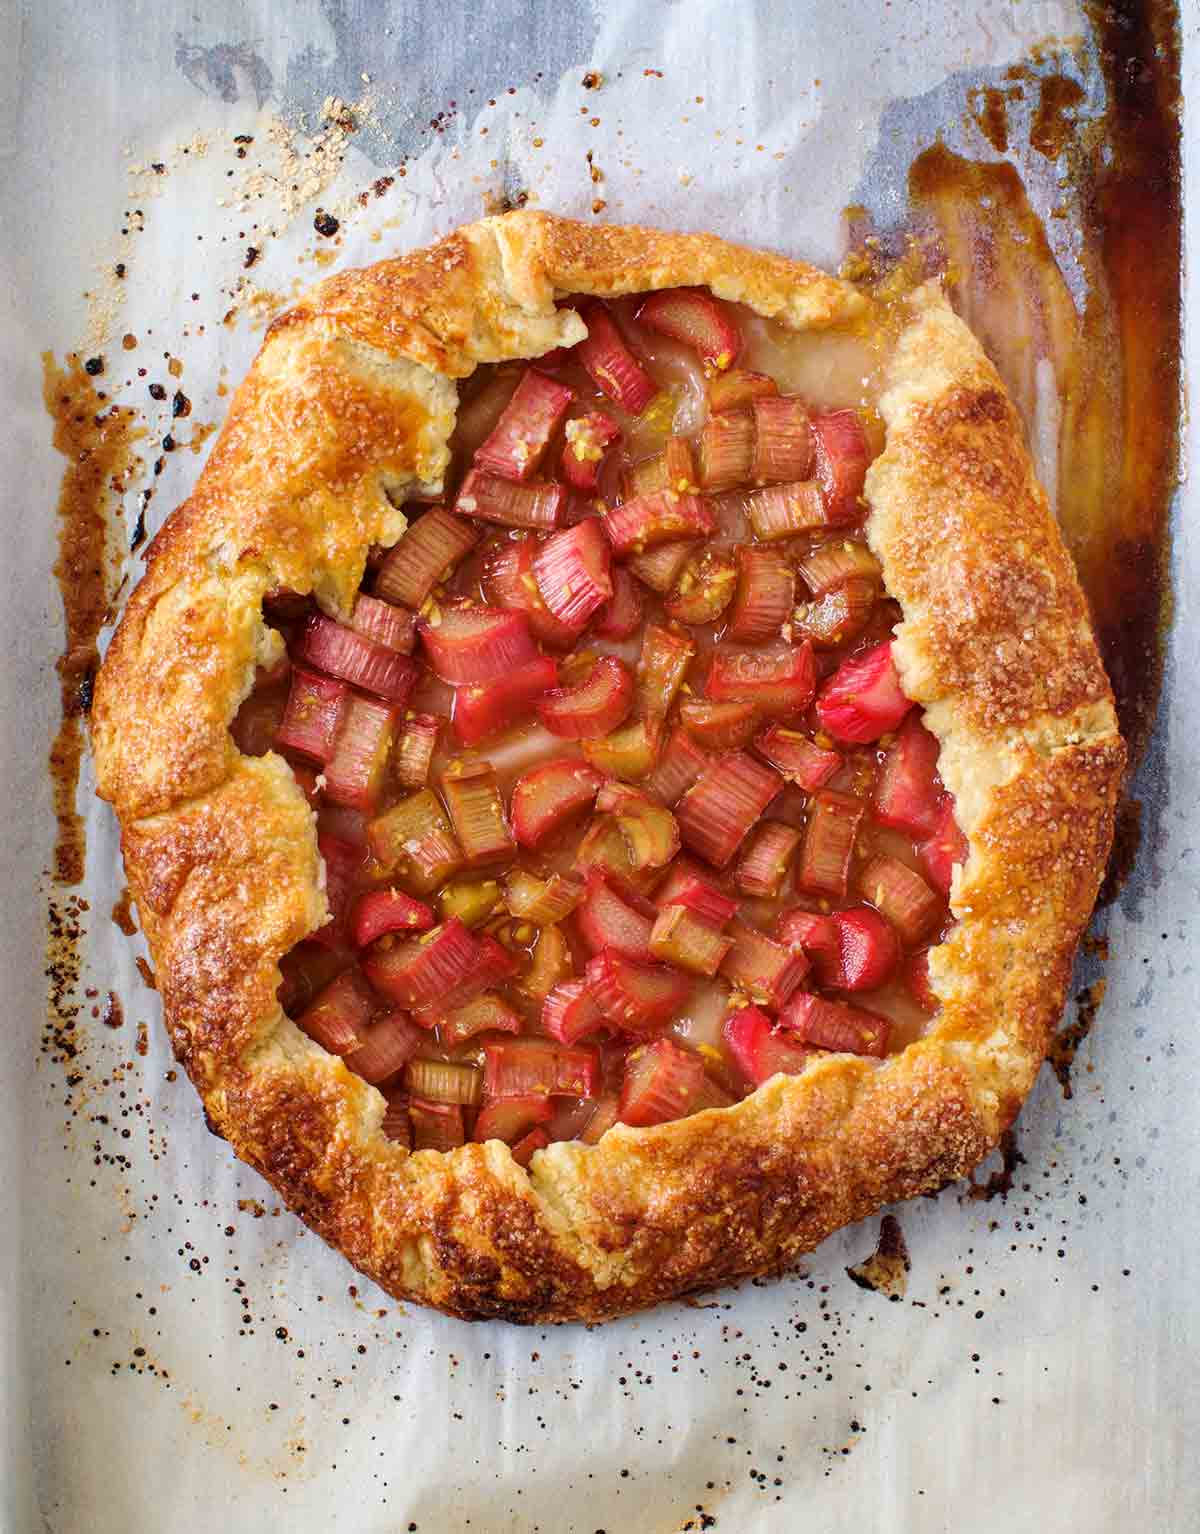 A whole baked rhubarb-ginger crostata on a piece of parchment paper.